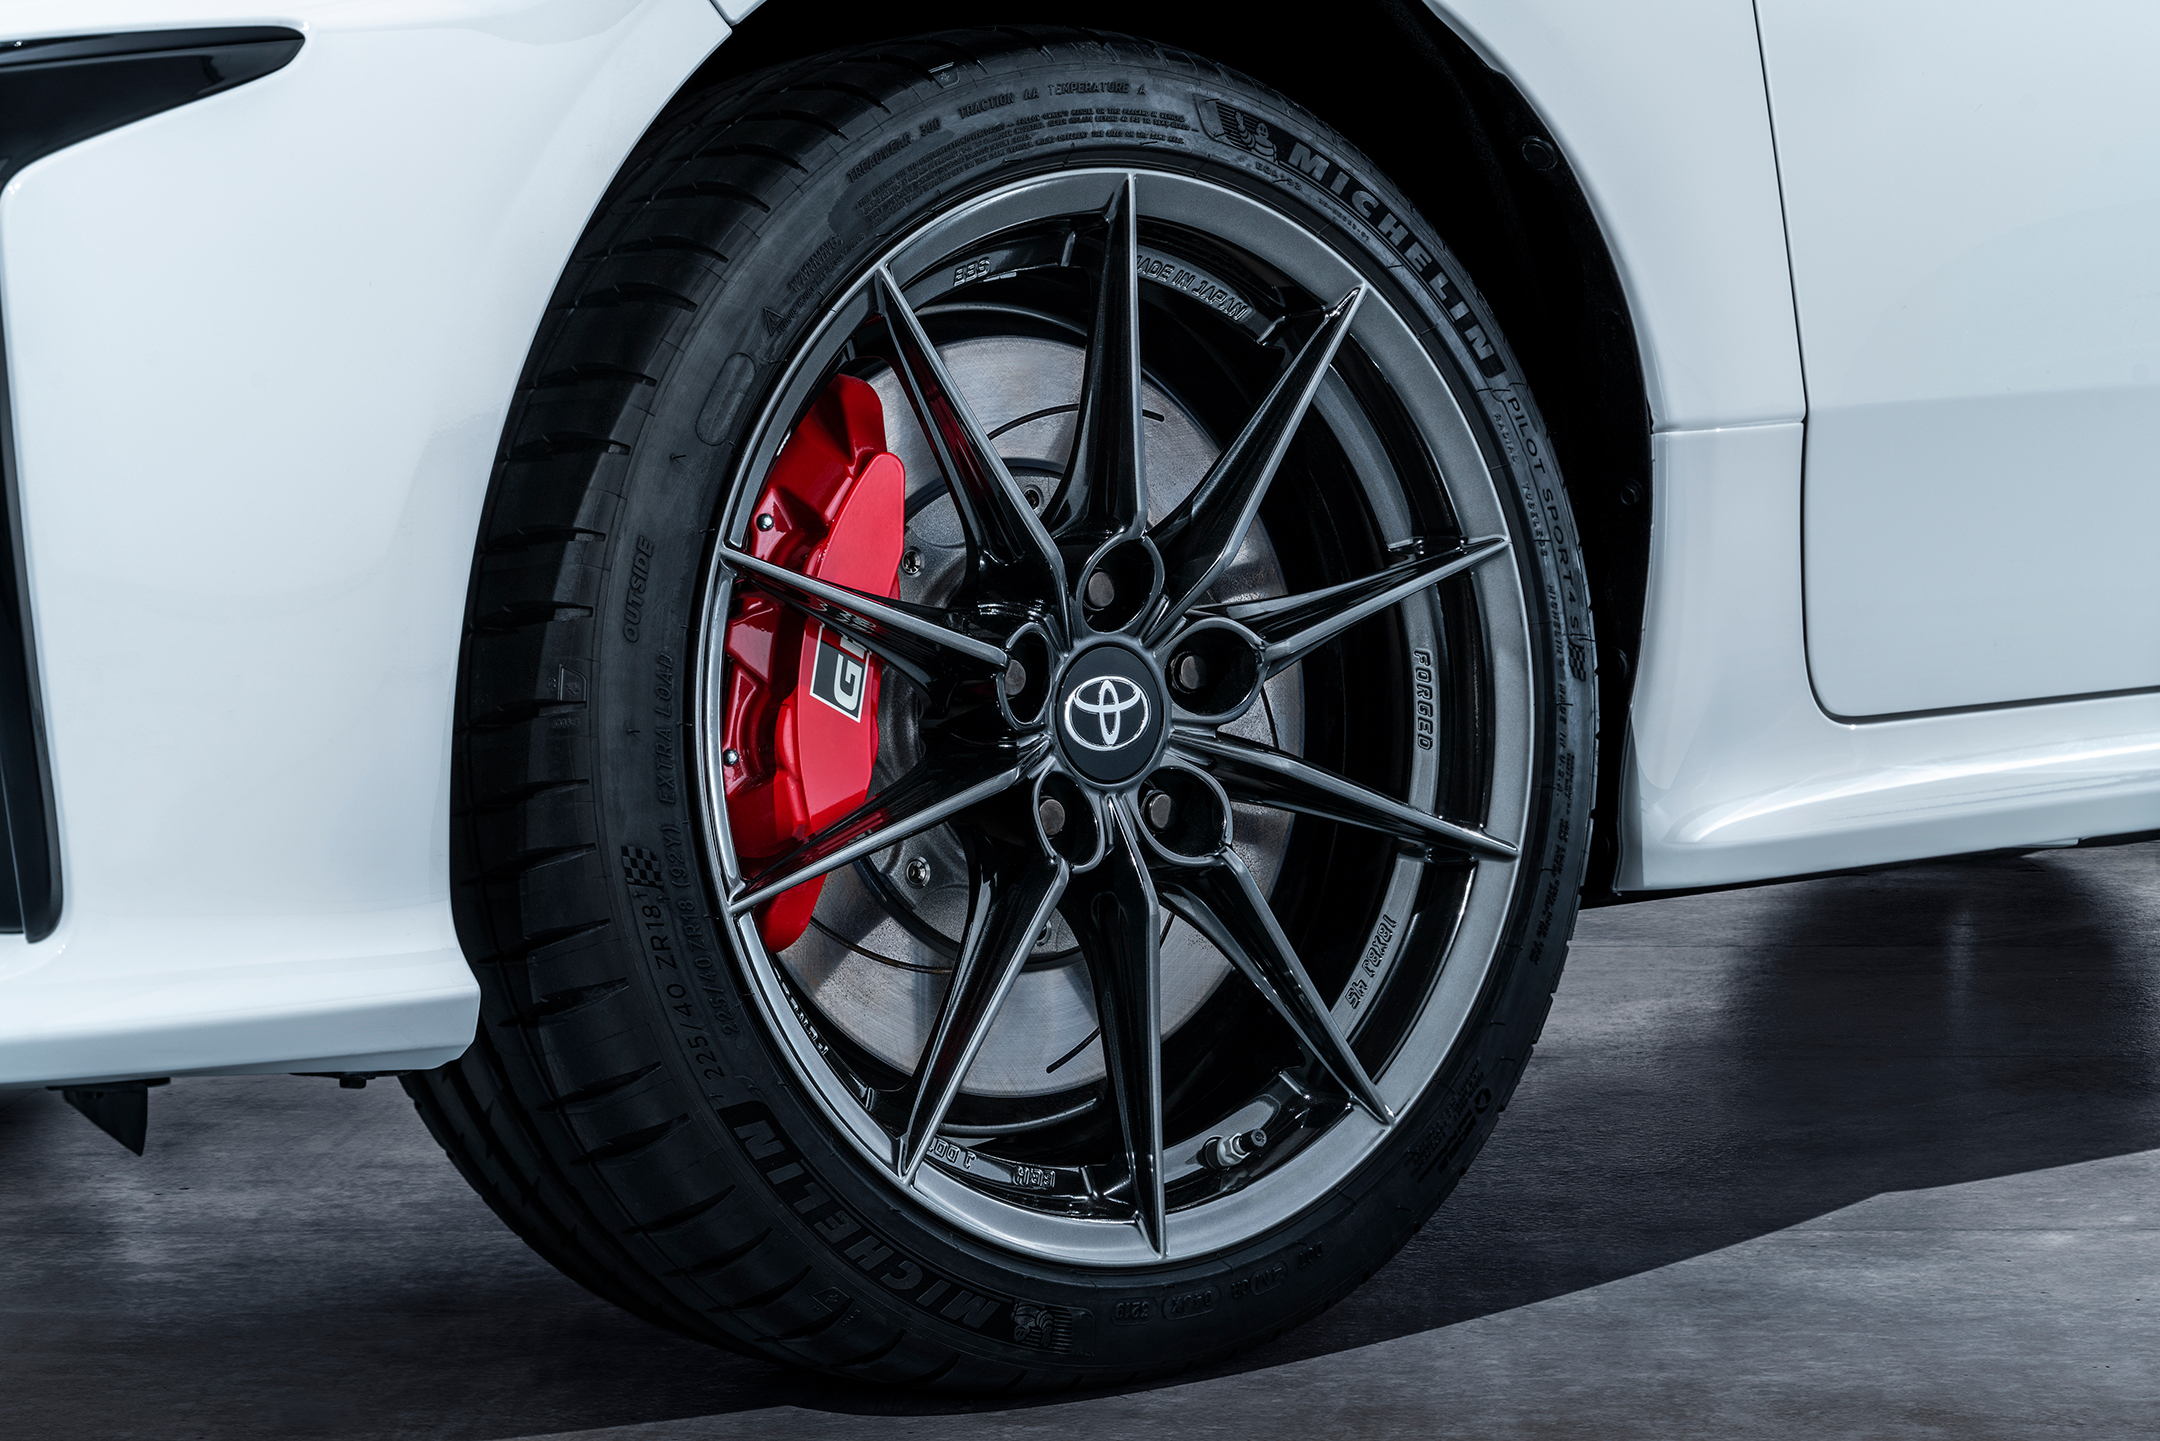 Toyota GR Yaris - 2020 - chassis / châssis - wheel / jante - tyres / pneus - Michelin